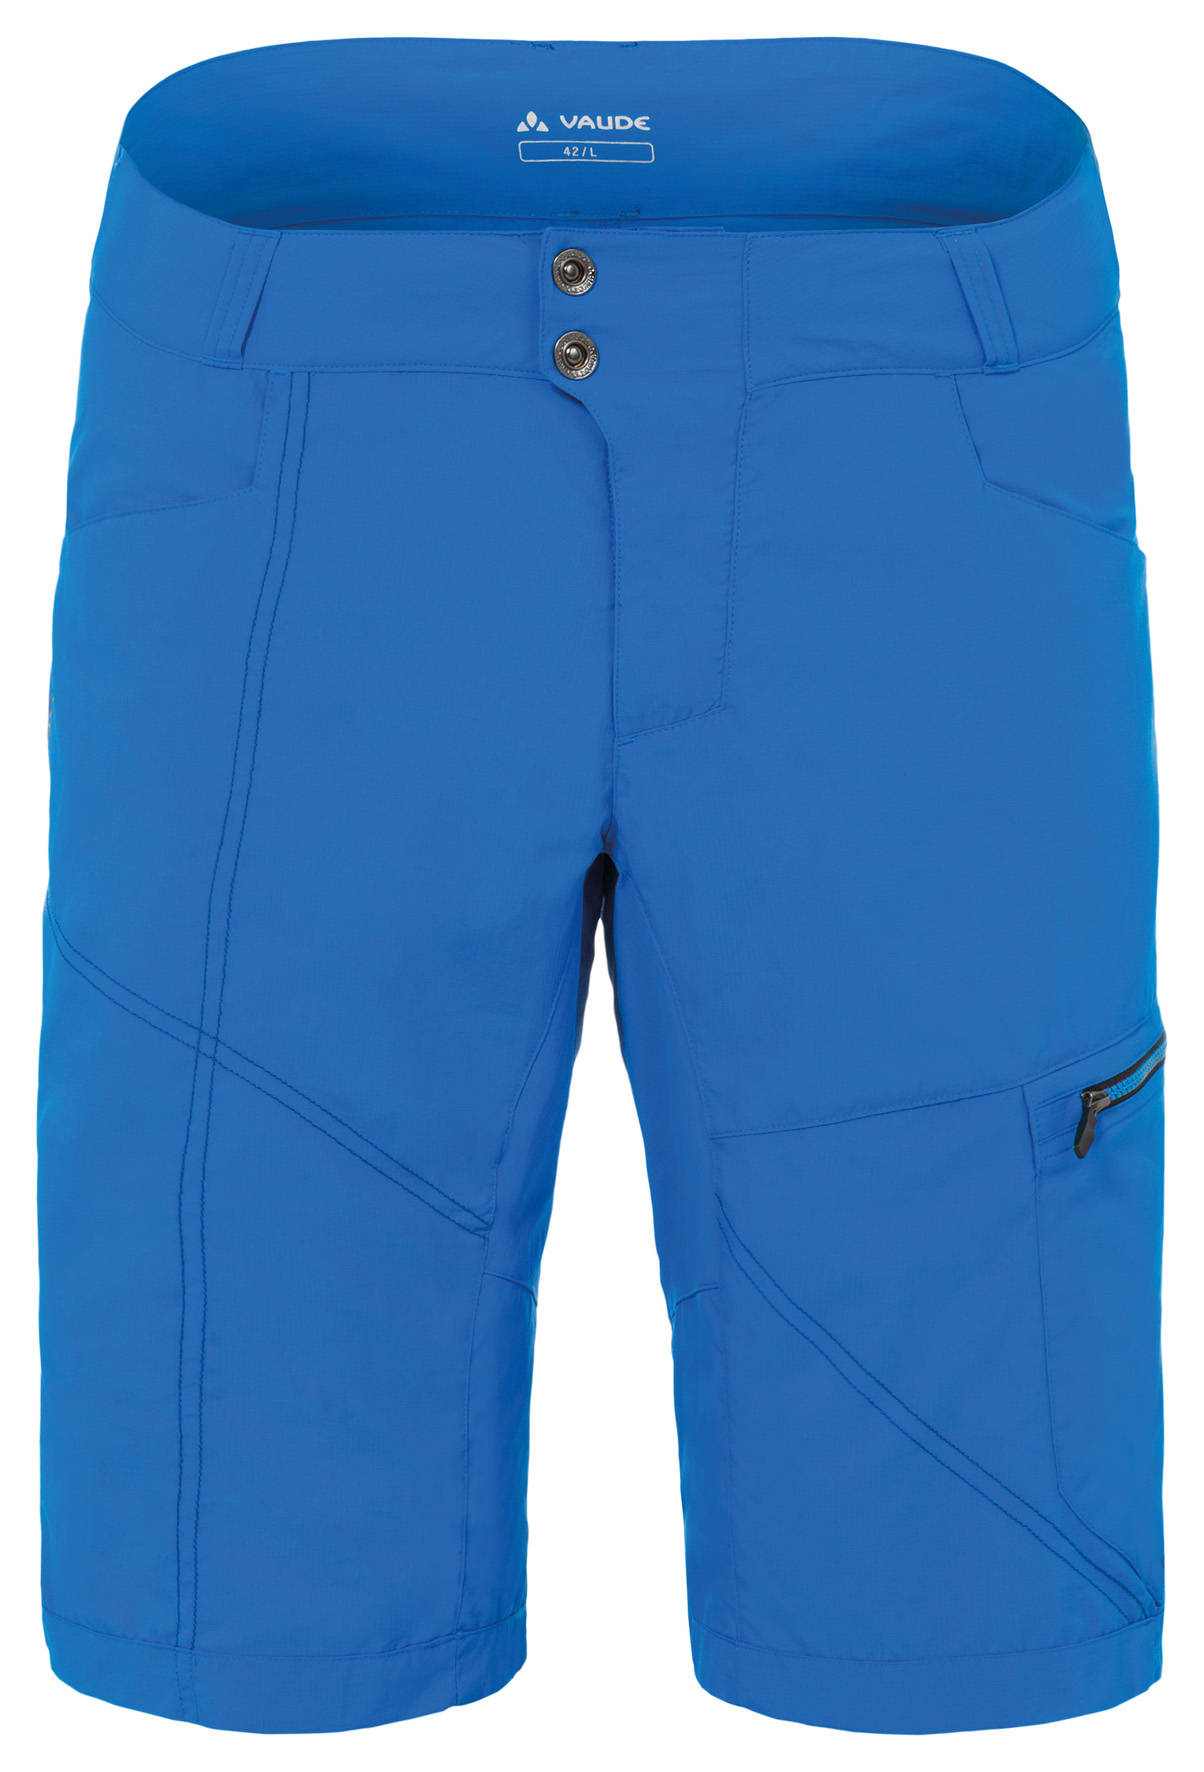 VAUDE Men´s Tamaro Shorts hydro blue Größe M - schneider-sports